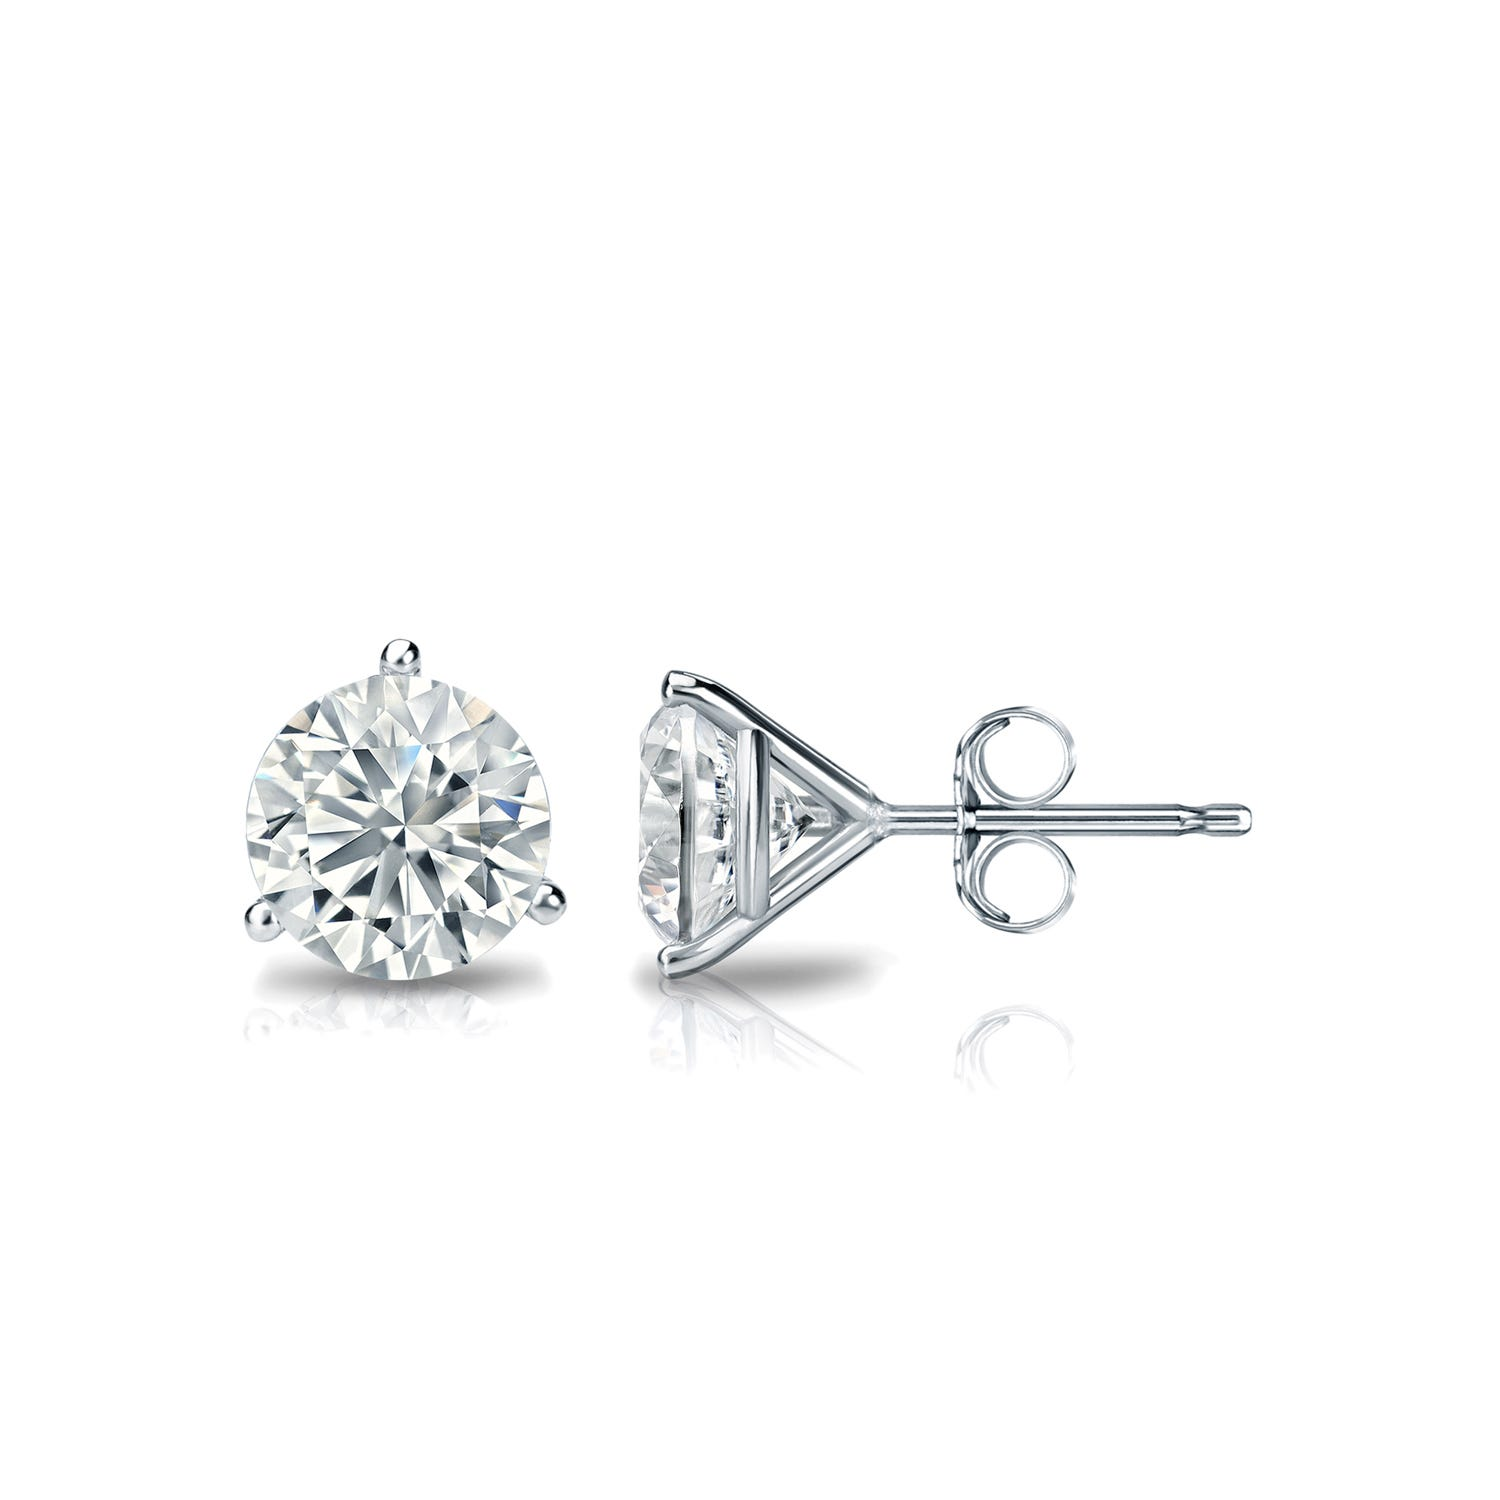 3/4 CTTW Round Diamond Solitaire Stud Earrings IJ I1 in Platinum IGI Certified 3-Prong Setting